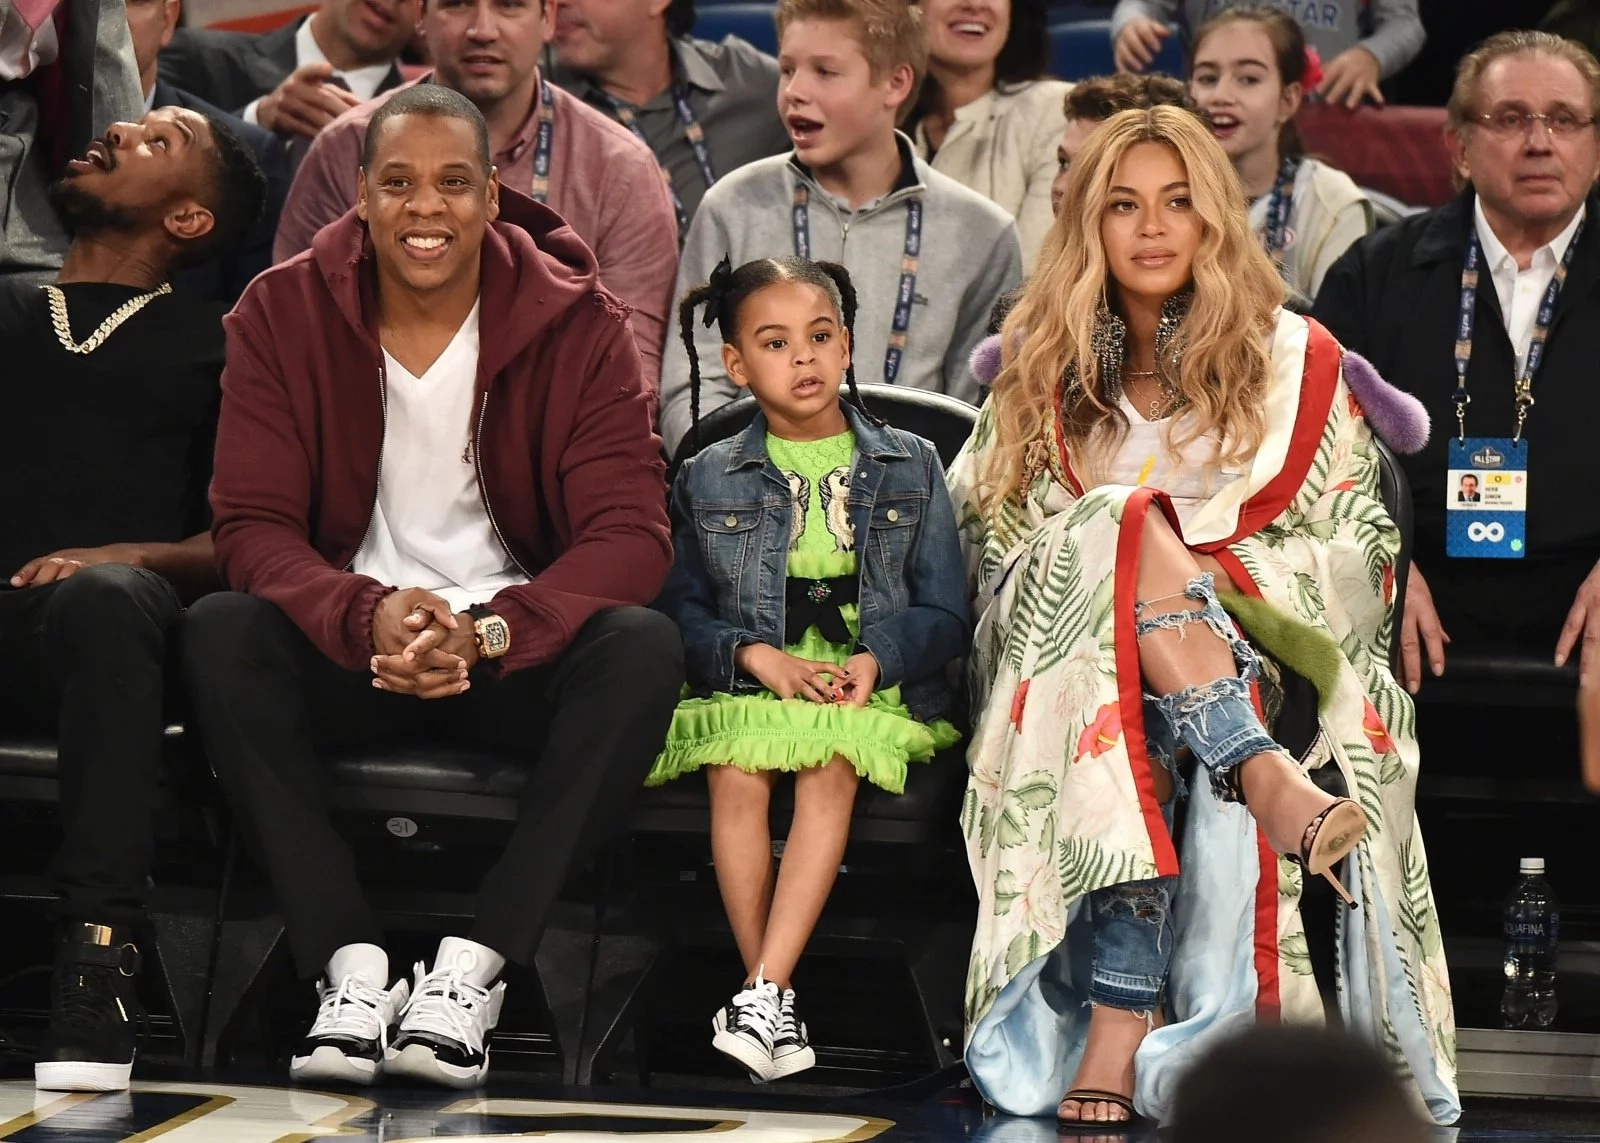 Beyoncé and Jay-Z's daughter, Blue Ivy, rocks the stage at a party. Doesn't she look natural?